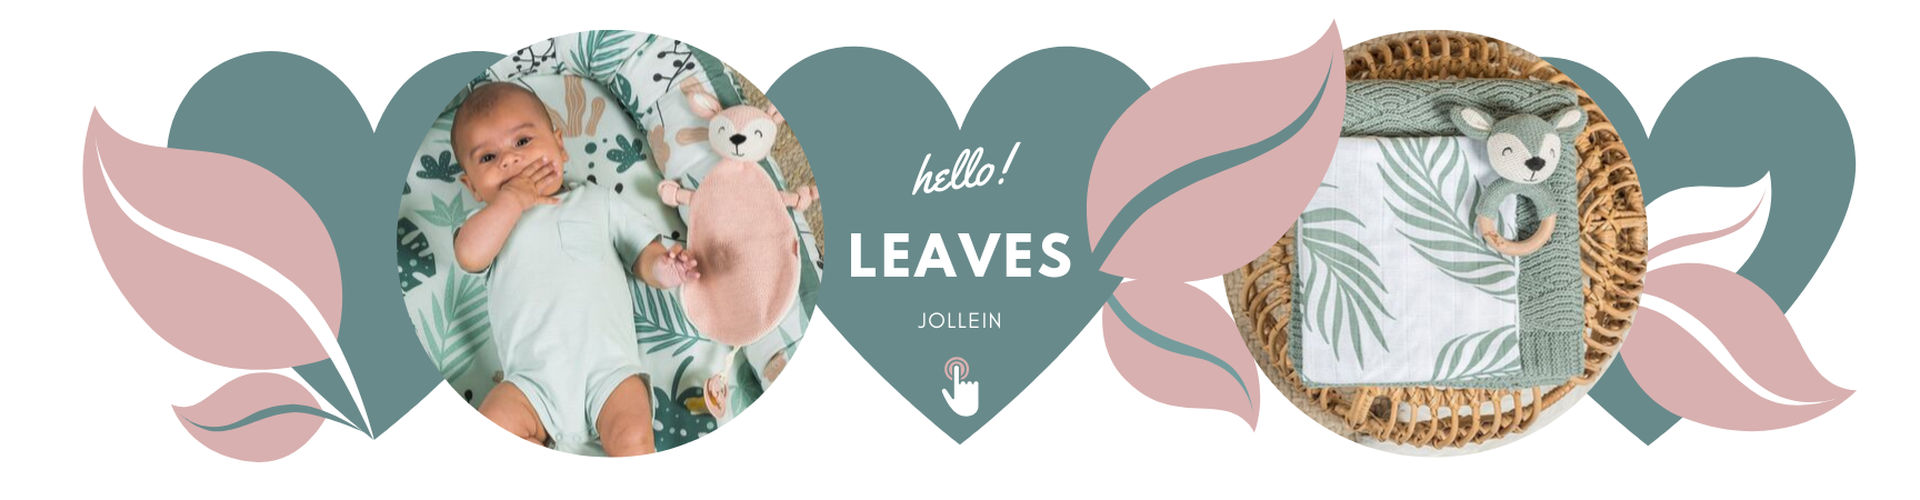 Jollein leaves